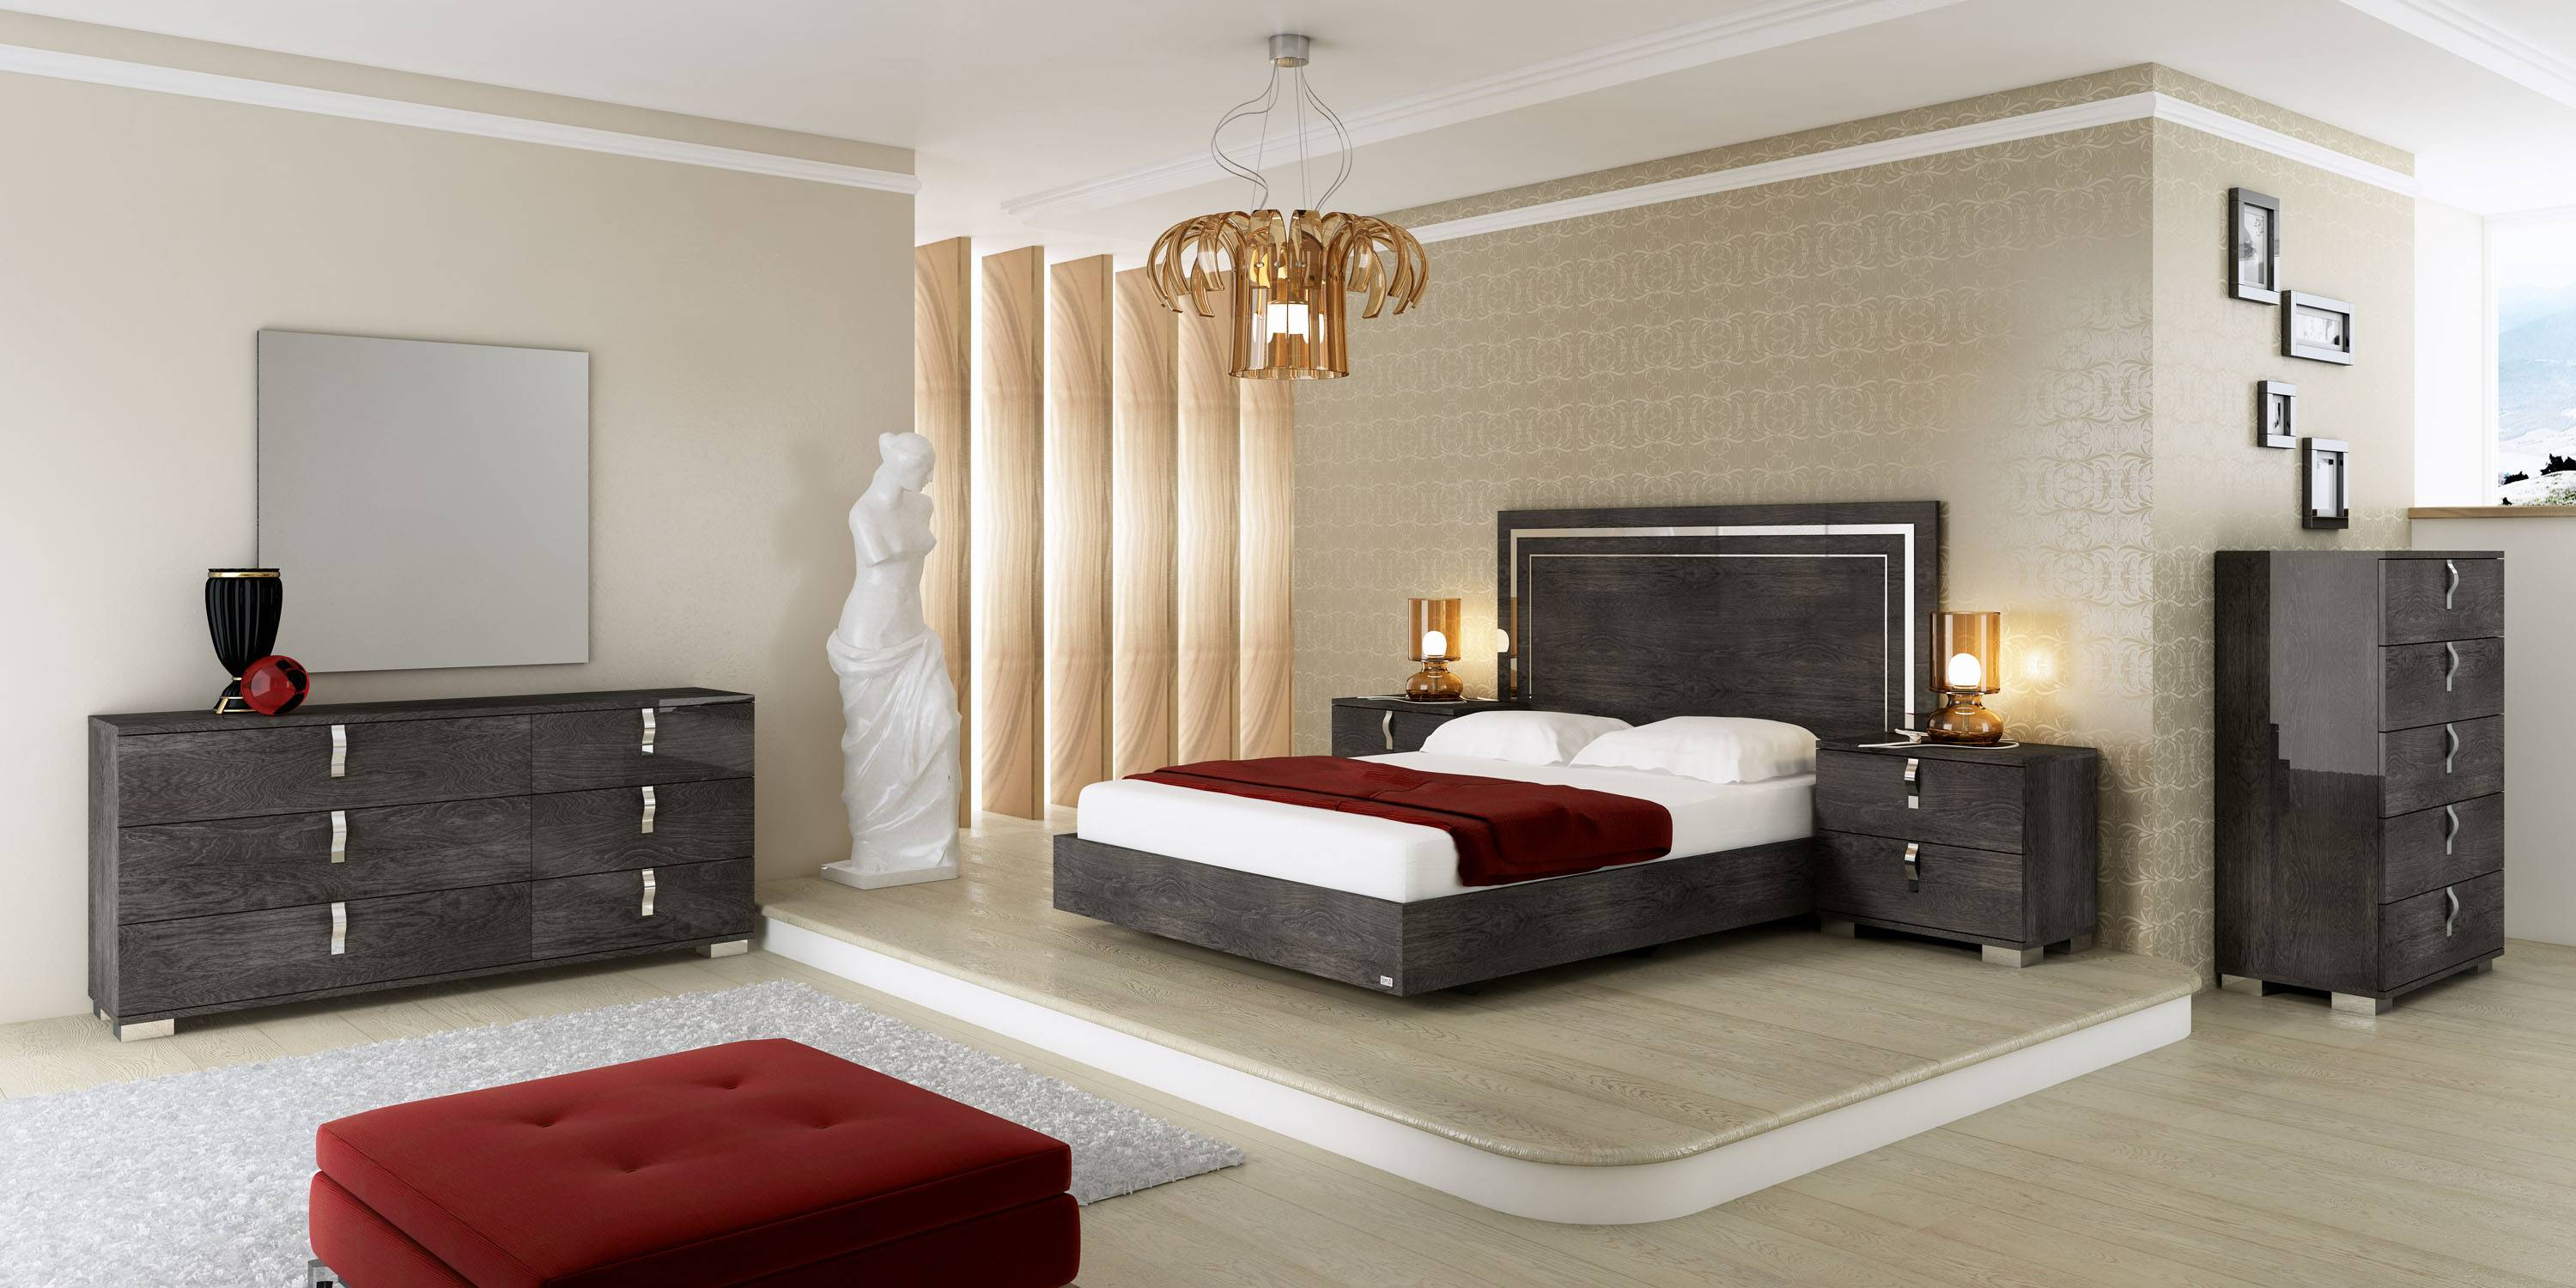 Made In Italy Wood Luxury Elite Bedroom Furniture With Extra Storage Baltimore Maryland Ahsar